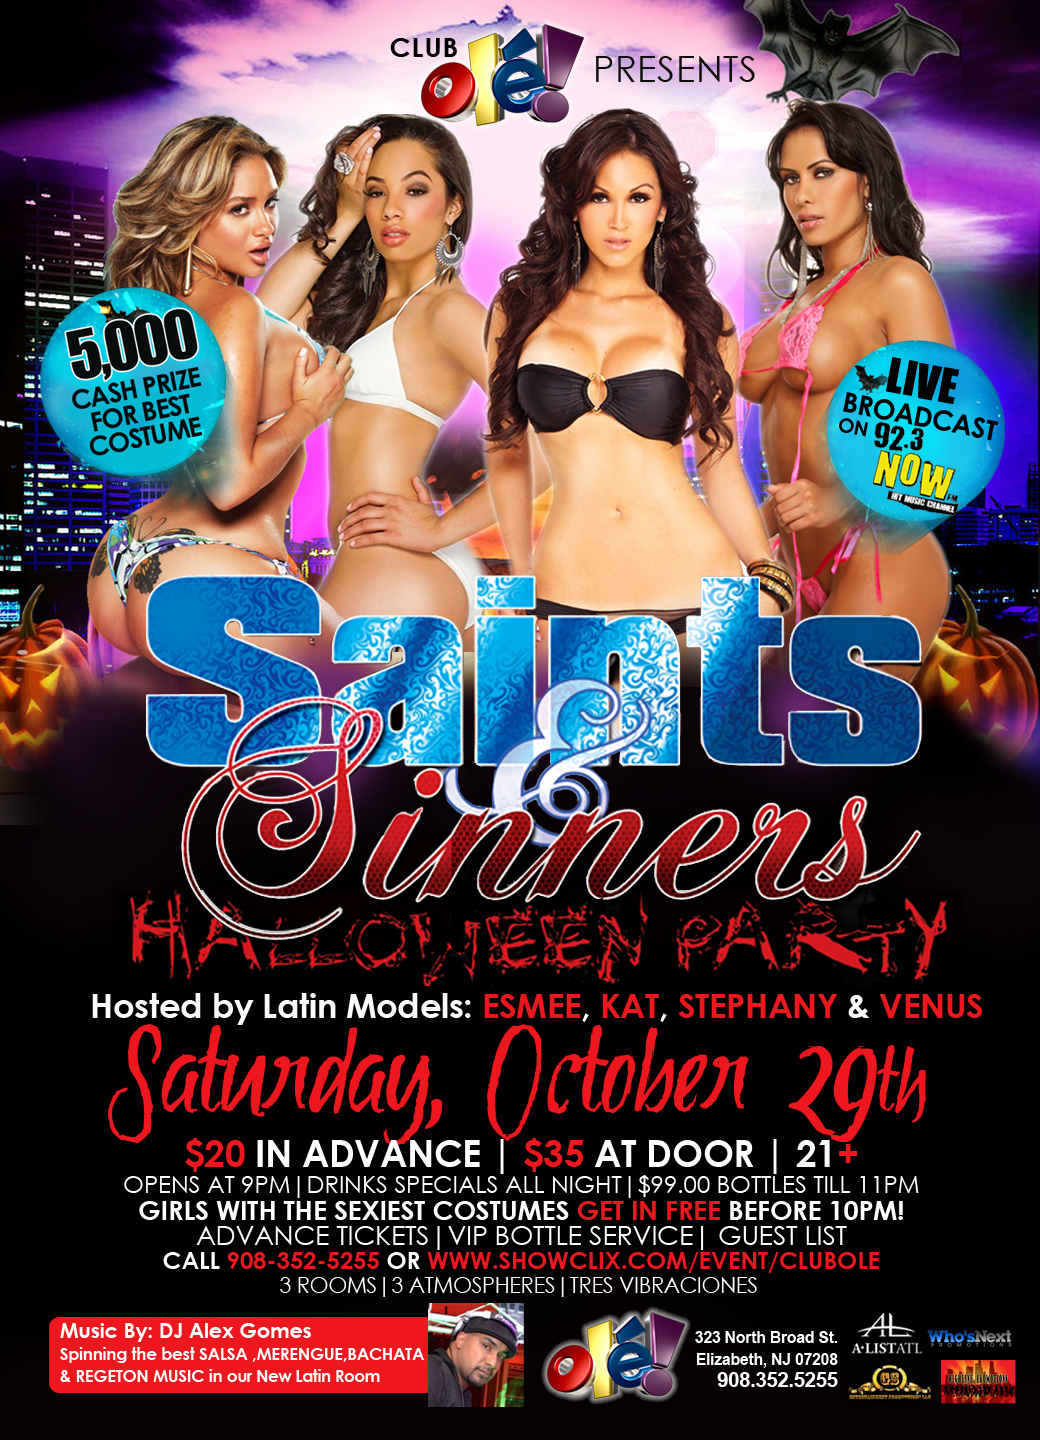 Tickets for Saints & Sinners Halloween Party in Elizabeth from ...